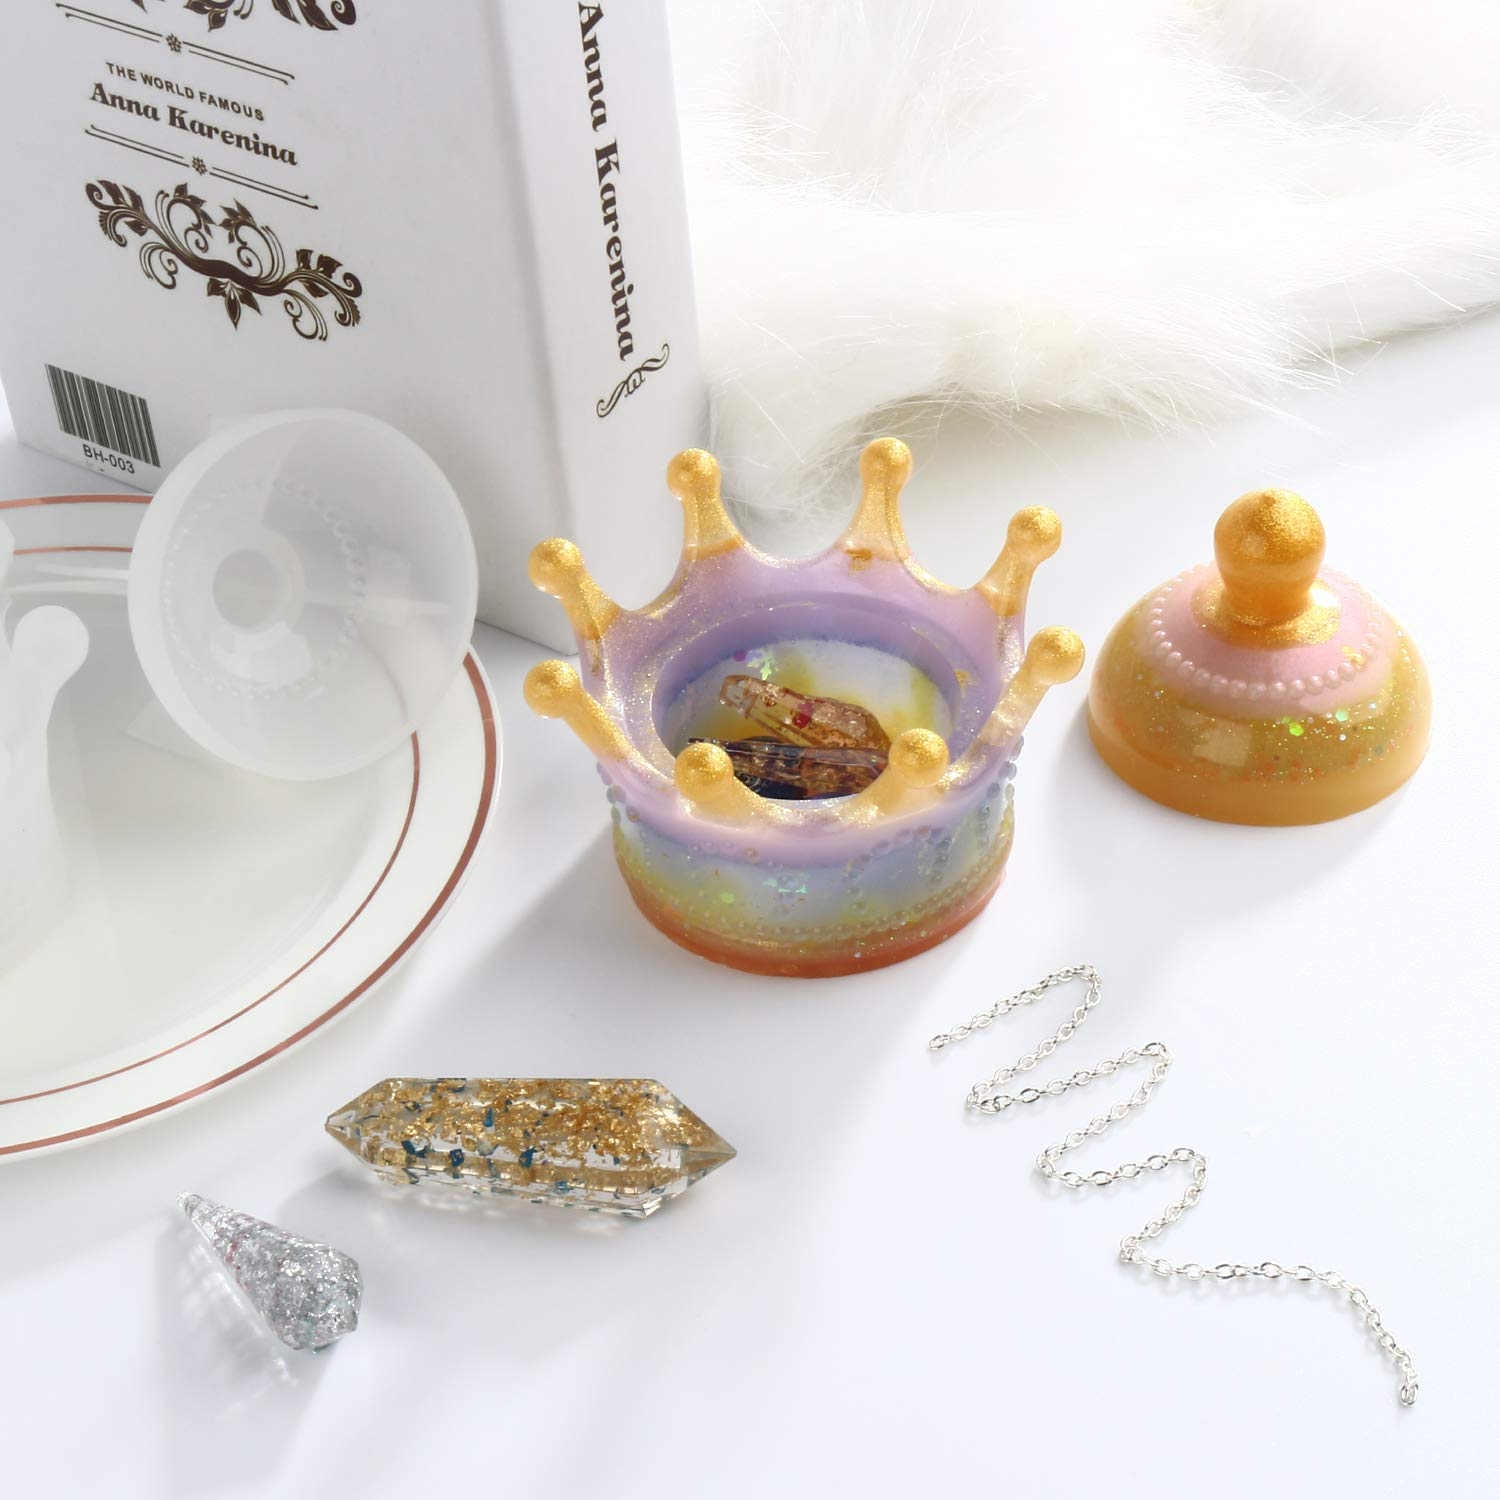 LETS RESIN Resin Trinket Box Molds Small Size Silicone Jewelry Box Molds Epoxy Resin Molds for Jewelry Storage Candlestick,Pen Holder